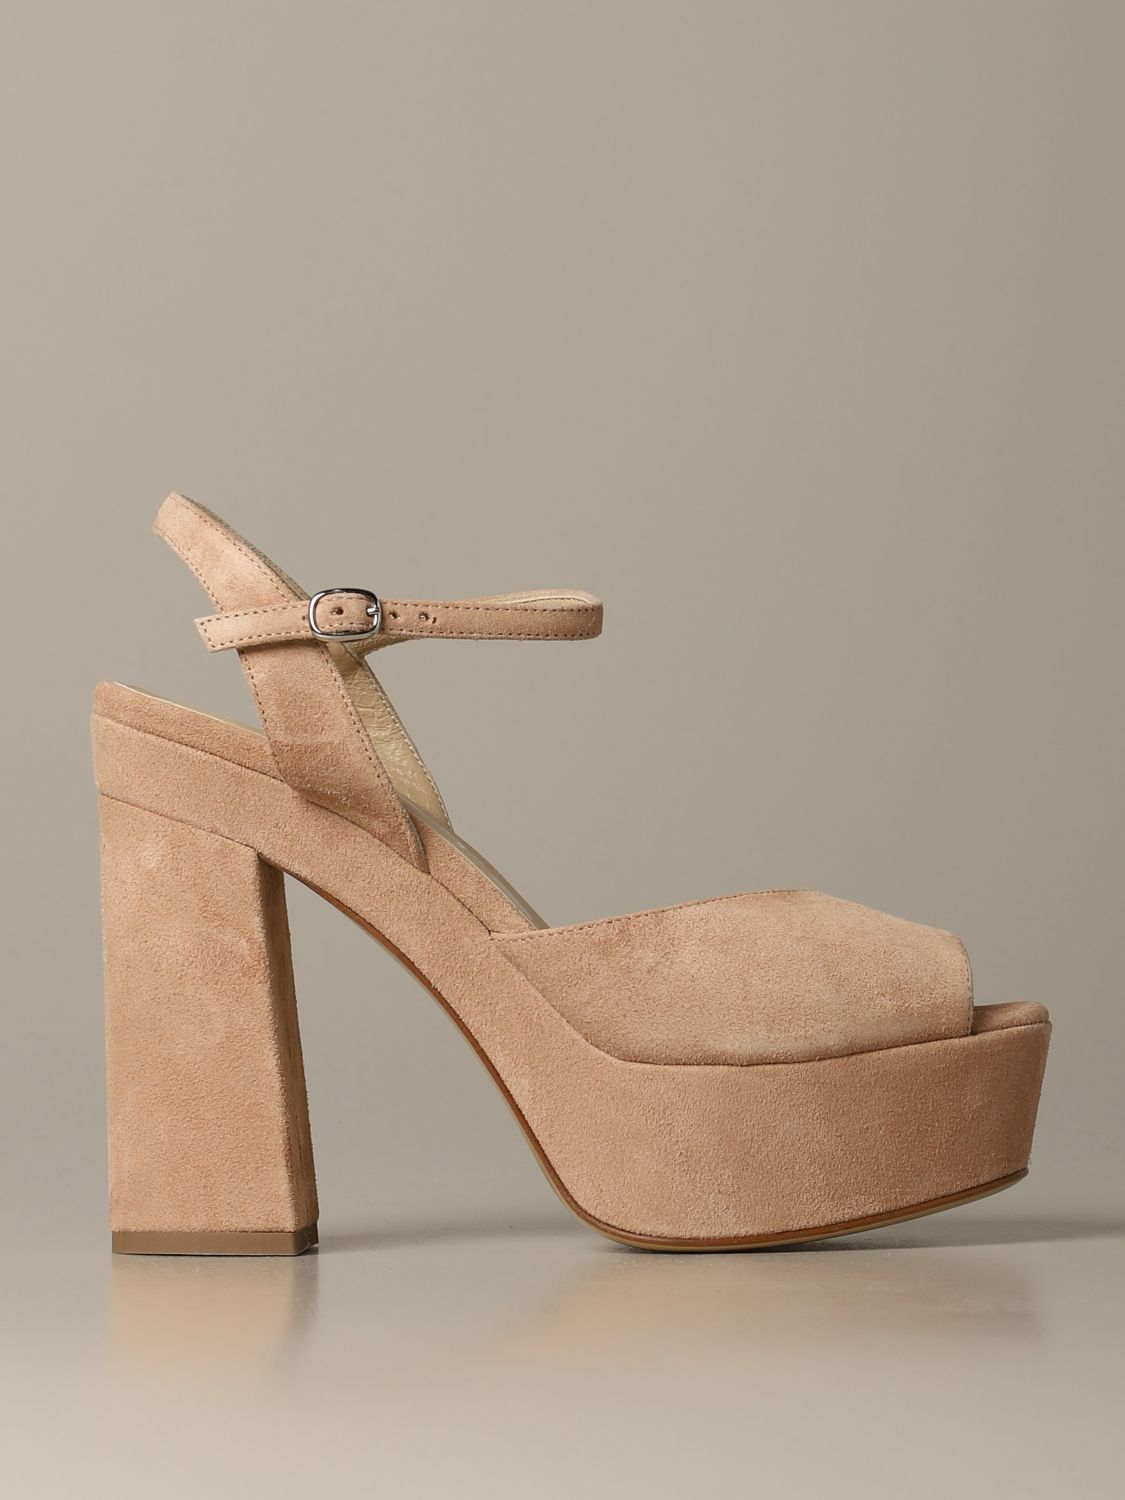 Shoes women Strategia pink 1